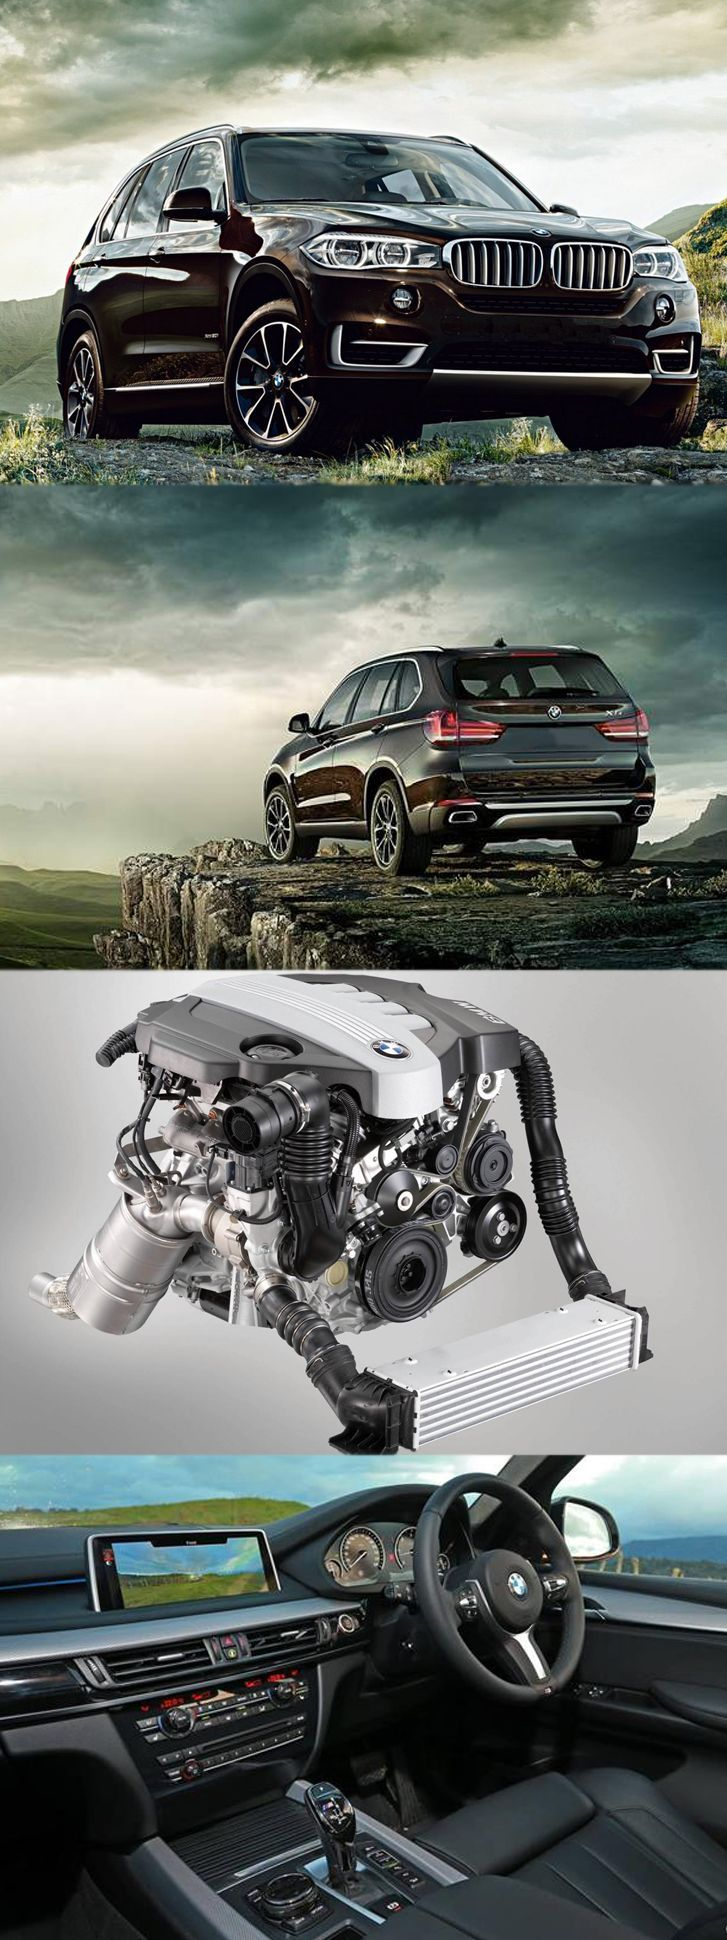 Bmw x5 e70 air suspension compressor original amk repair kit view more on the link http www zeppy io product gb 2 151973203943 bmw pinterest